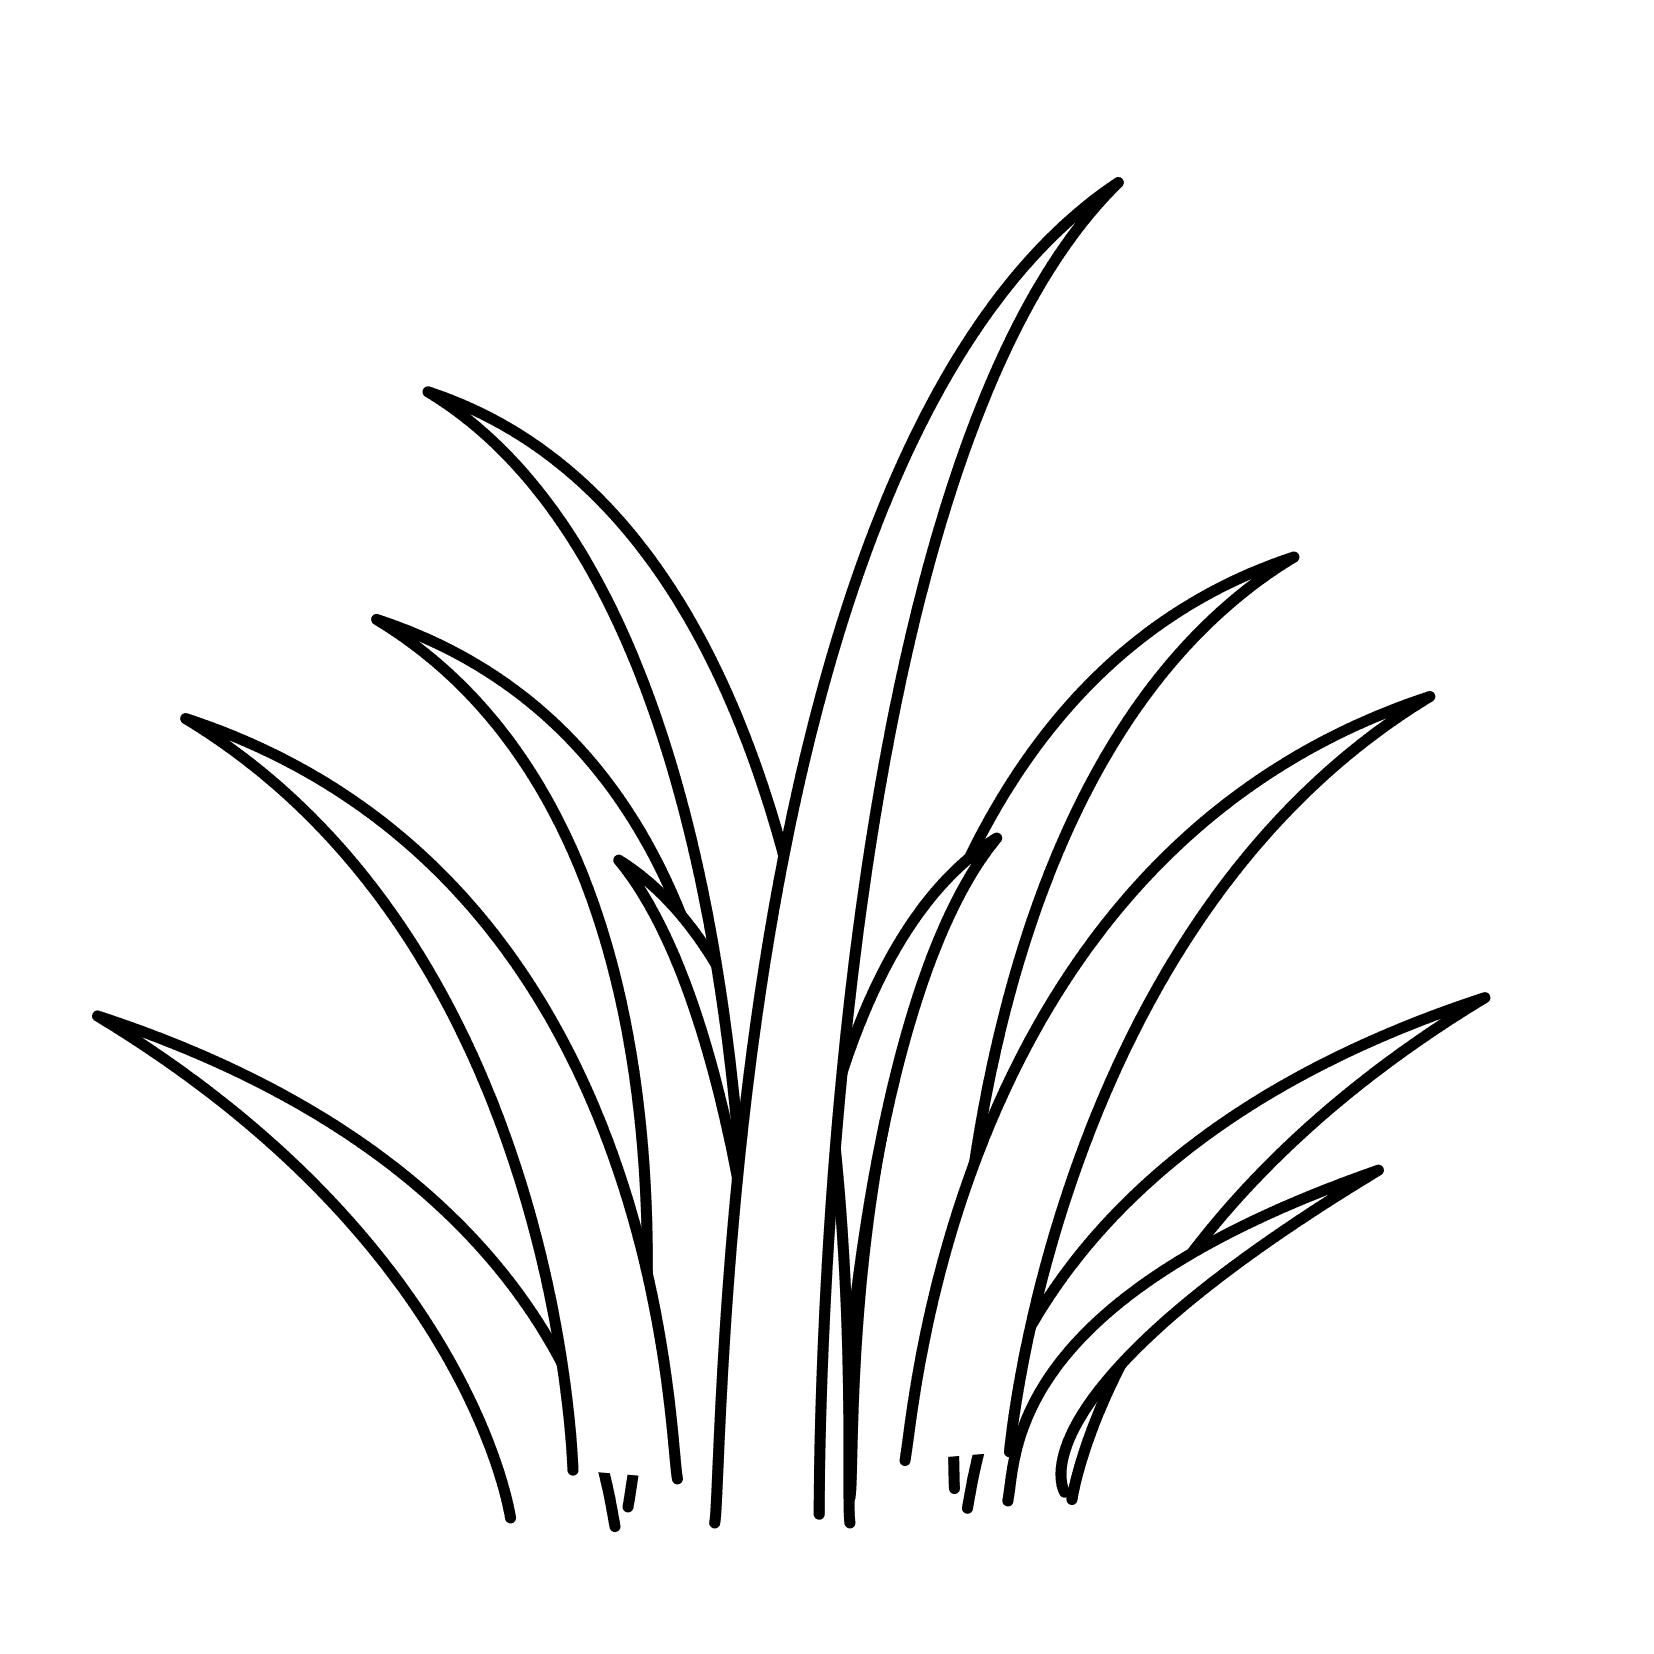 Grass Coloring Page - Pictures Of Fence and Grass to Color and Print